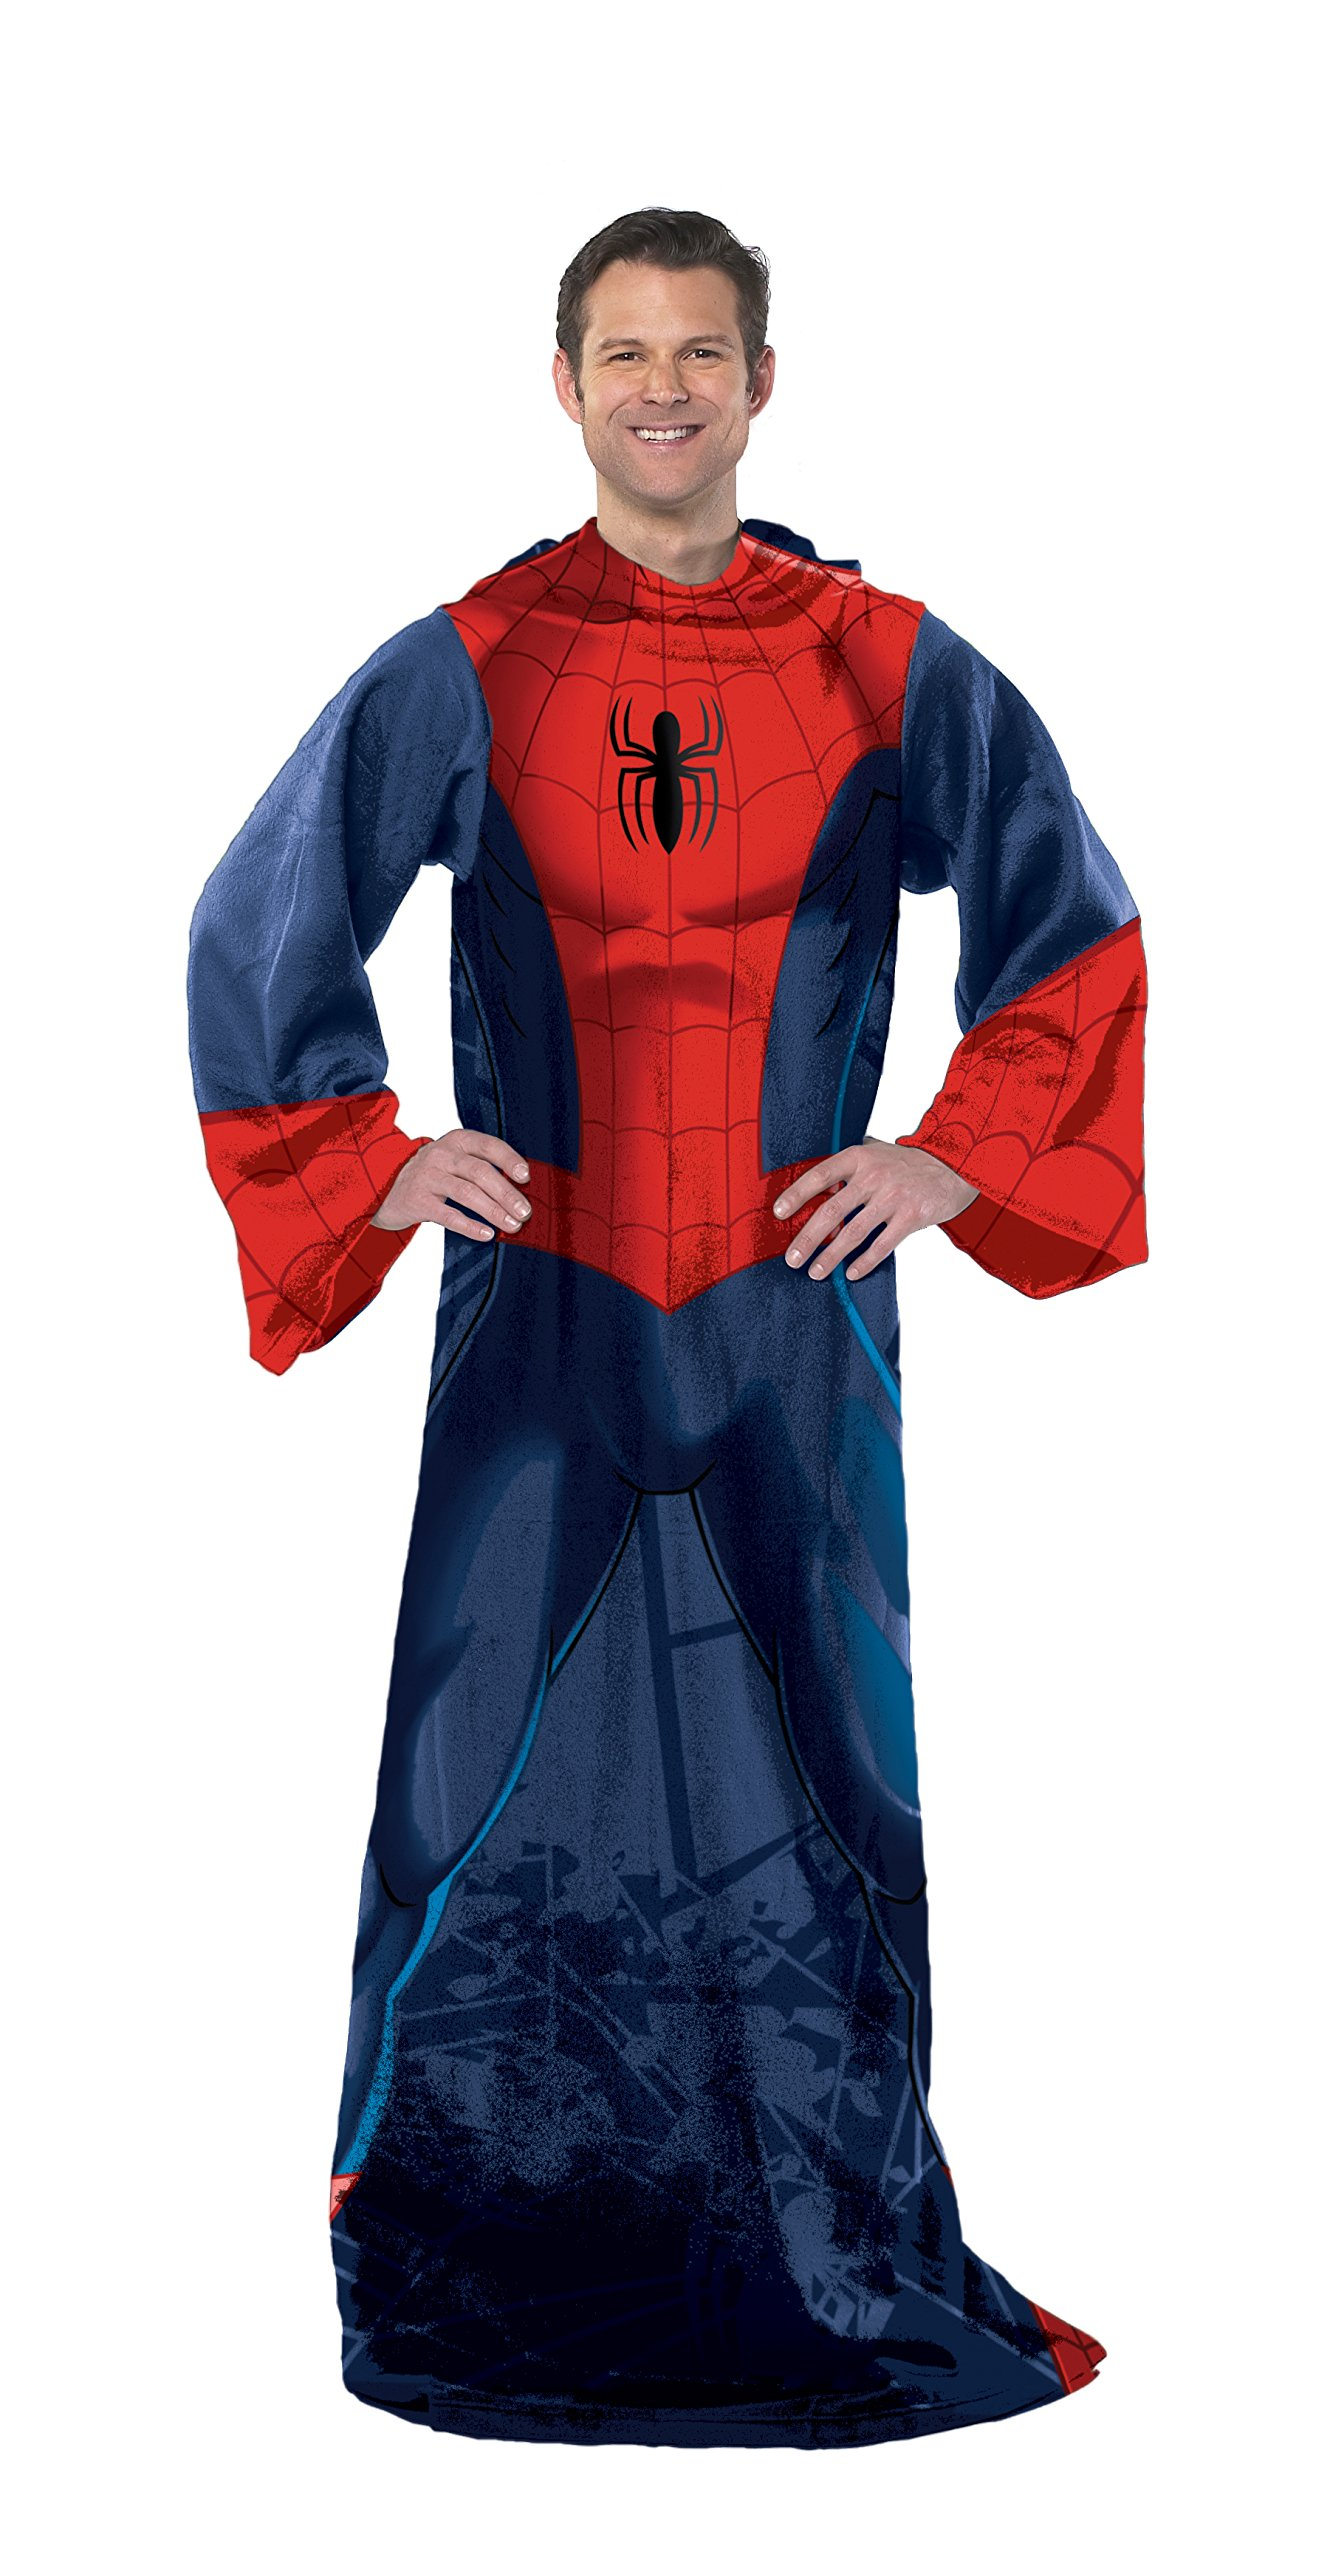 Marvel's Spider-Man, ''Spider Up'' Adult Comfy Throw Blanket with Sleeves, 48'' x 71'', Multi Color by Marvel